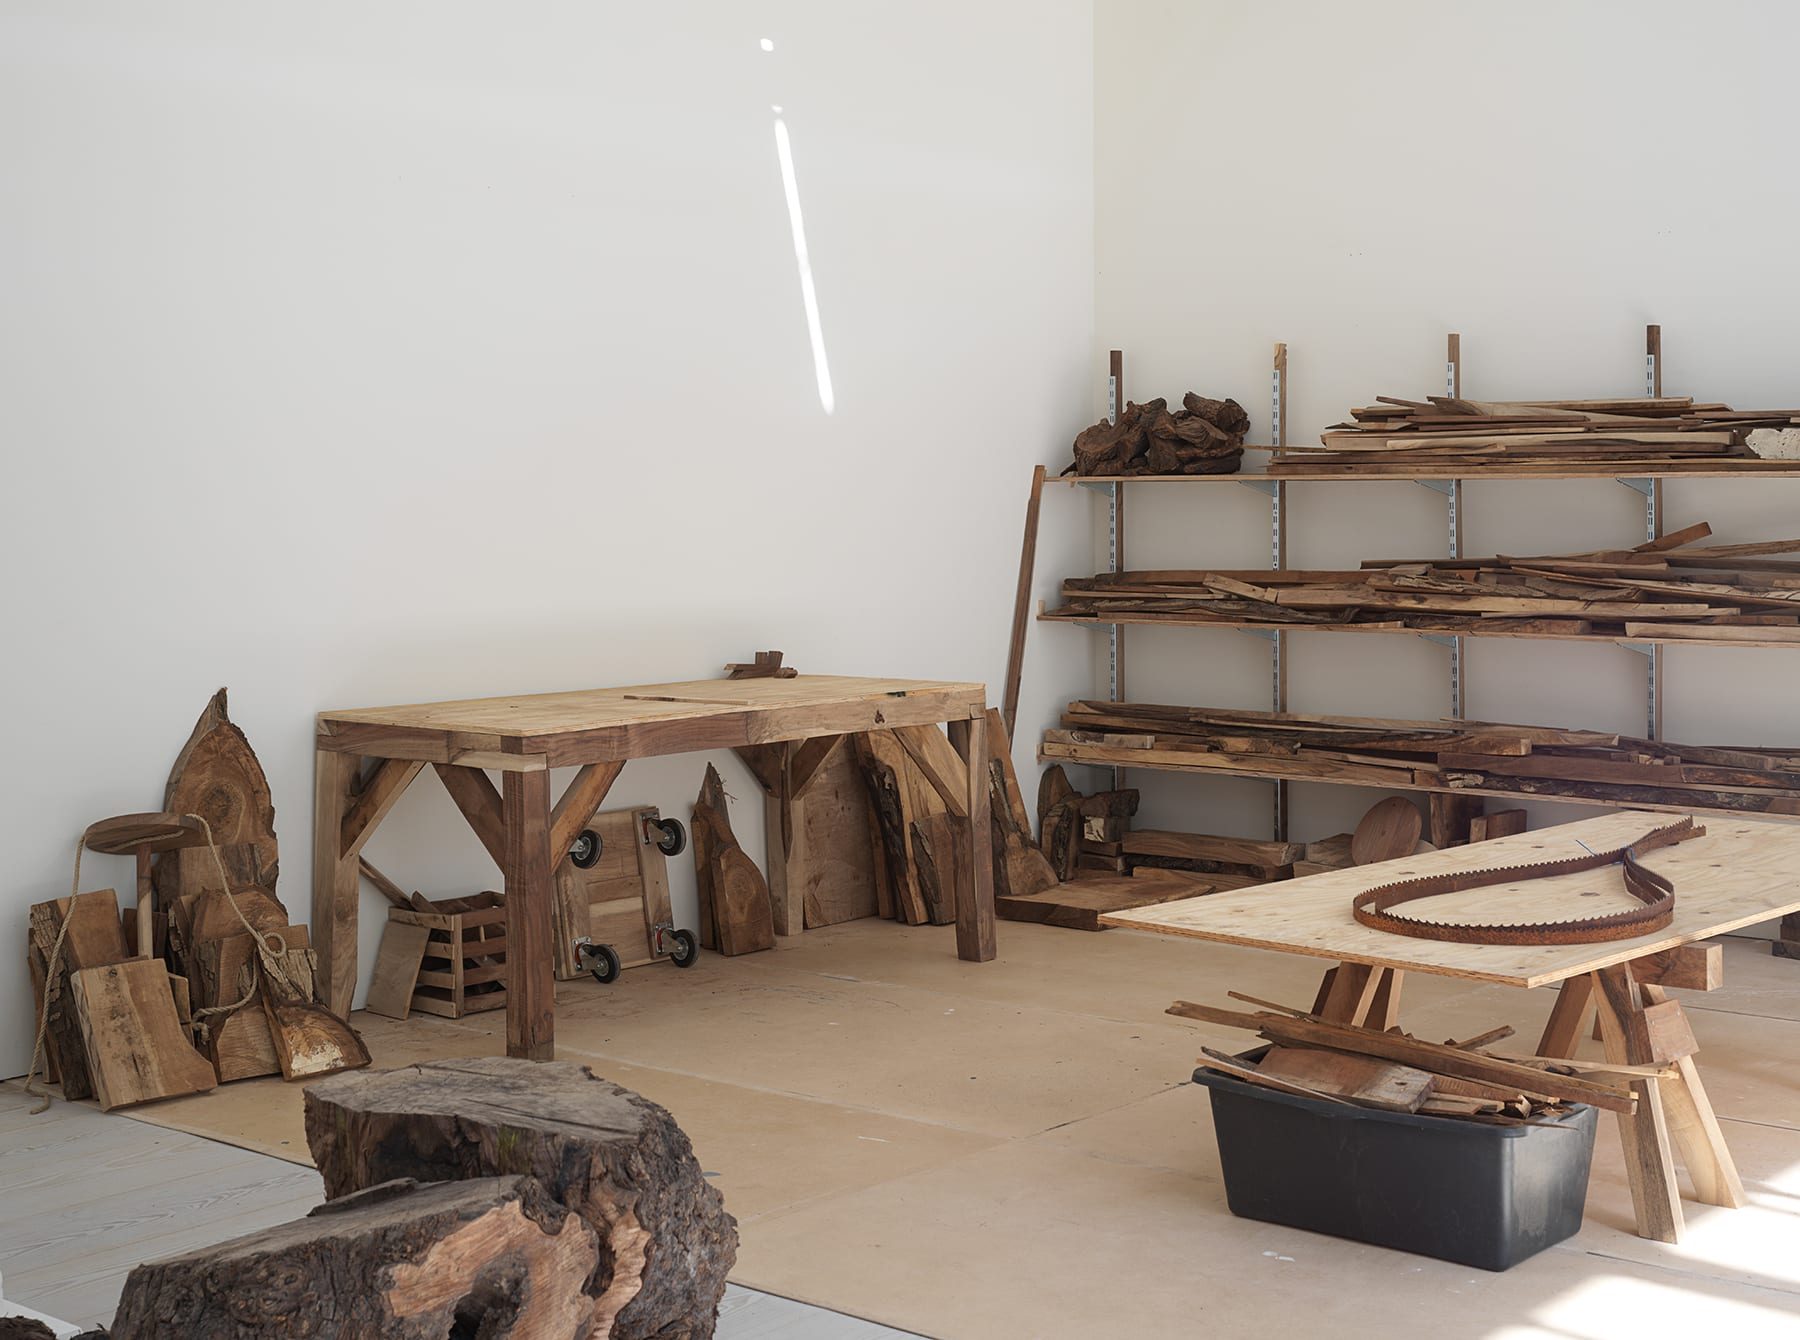 Gallery filled with a couple of working tables and wood stored on shelves, in bins and along gallery wall.